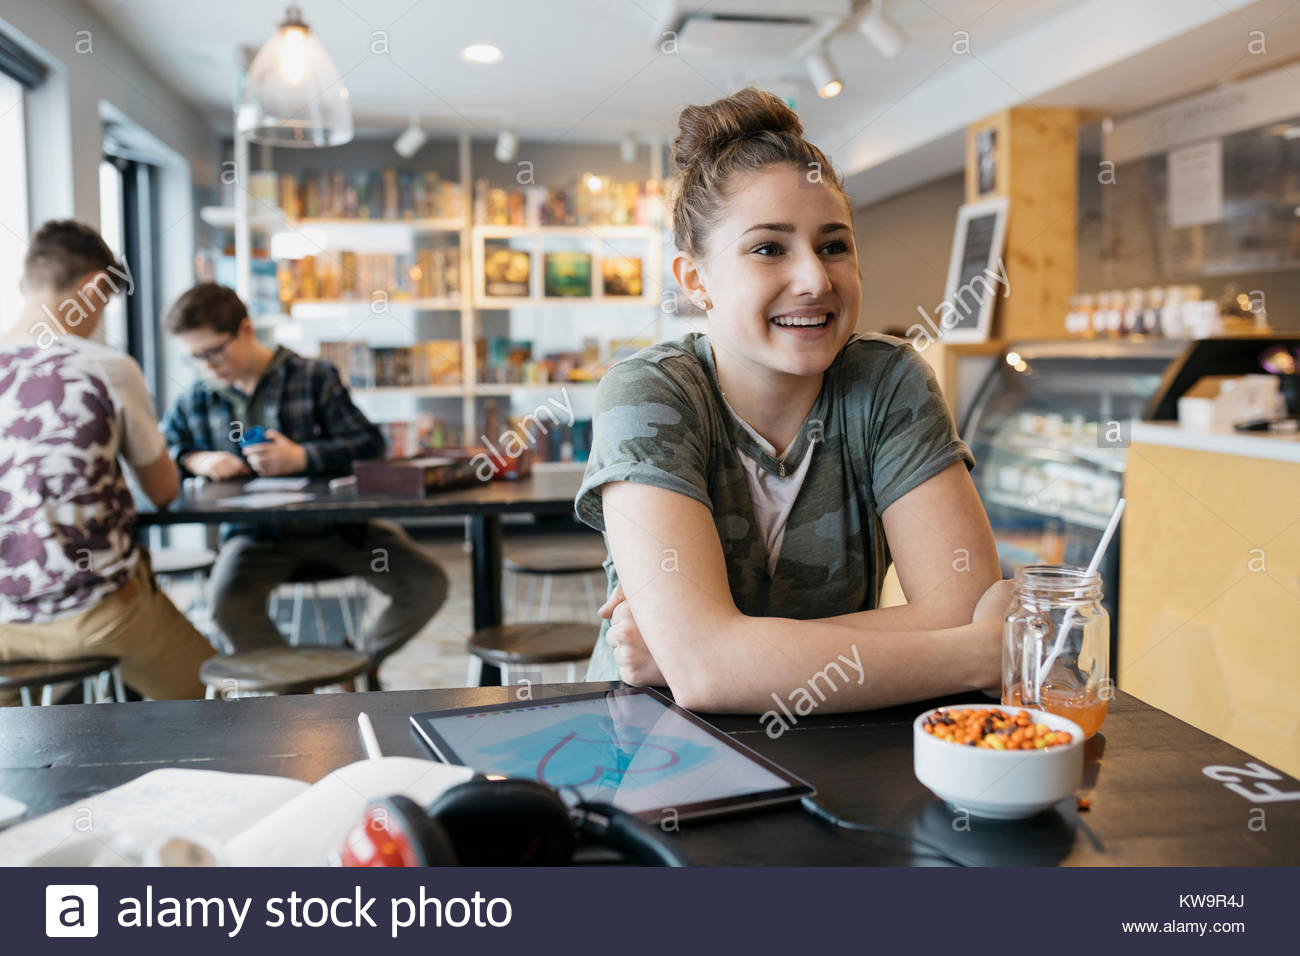 Smiling Caucasian high school girl student with digital tablet studying in cafe - Stock Image